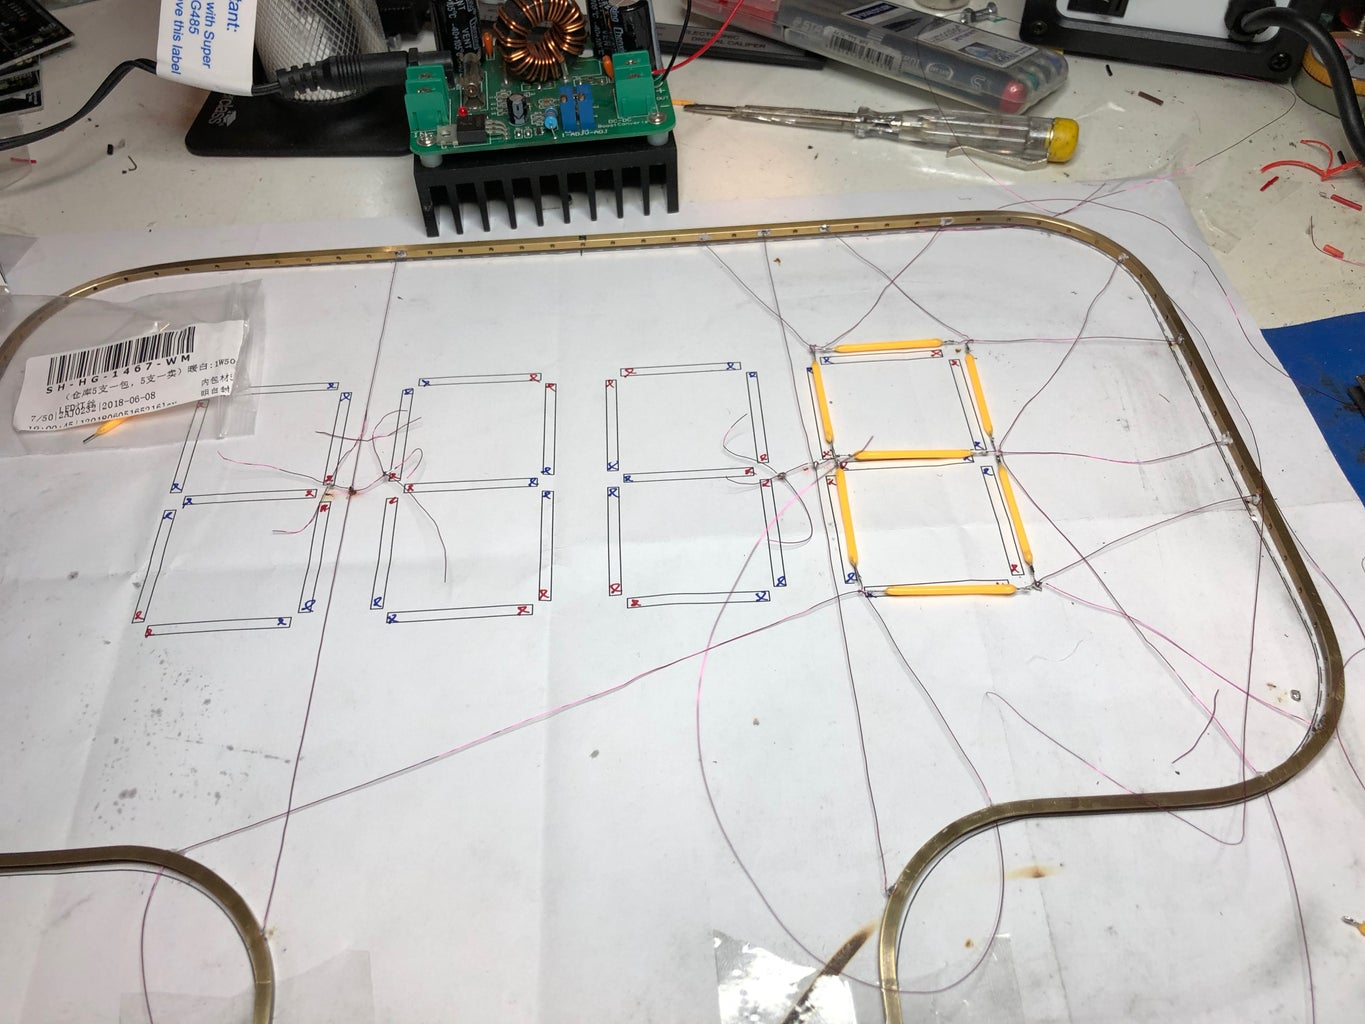 Wire in the LEDs.